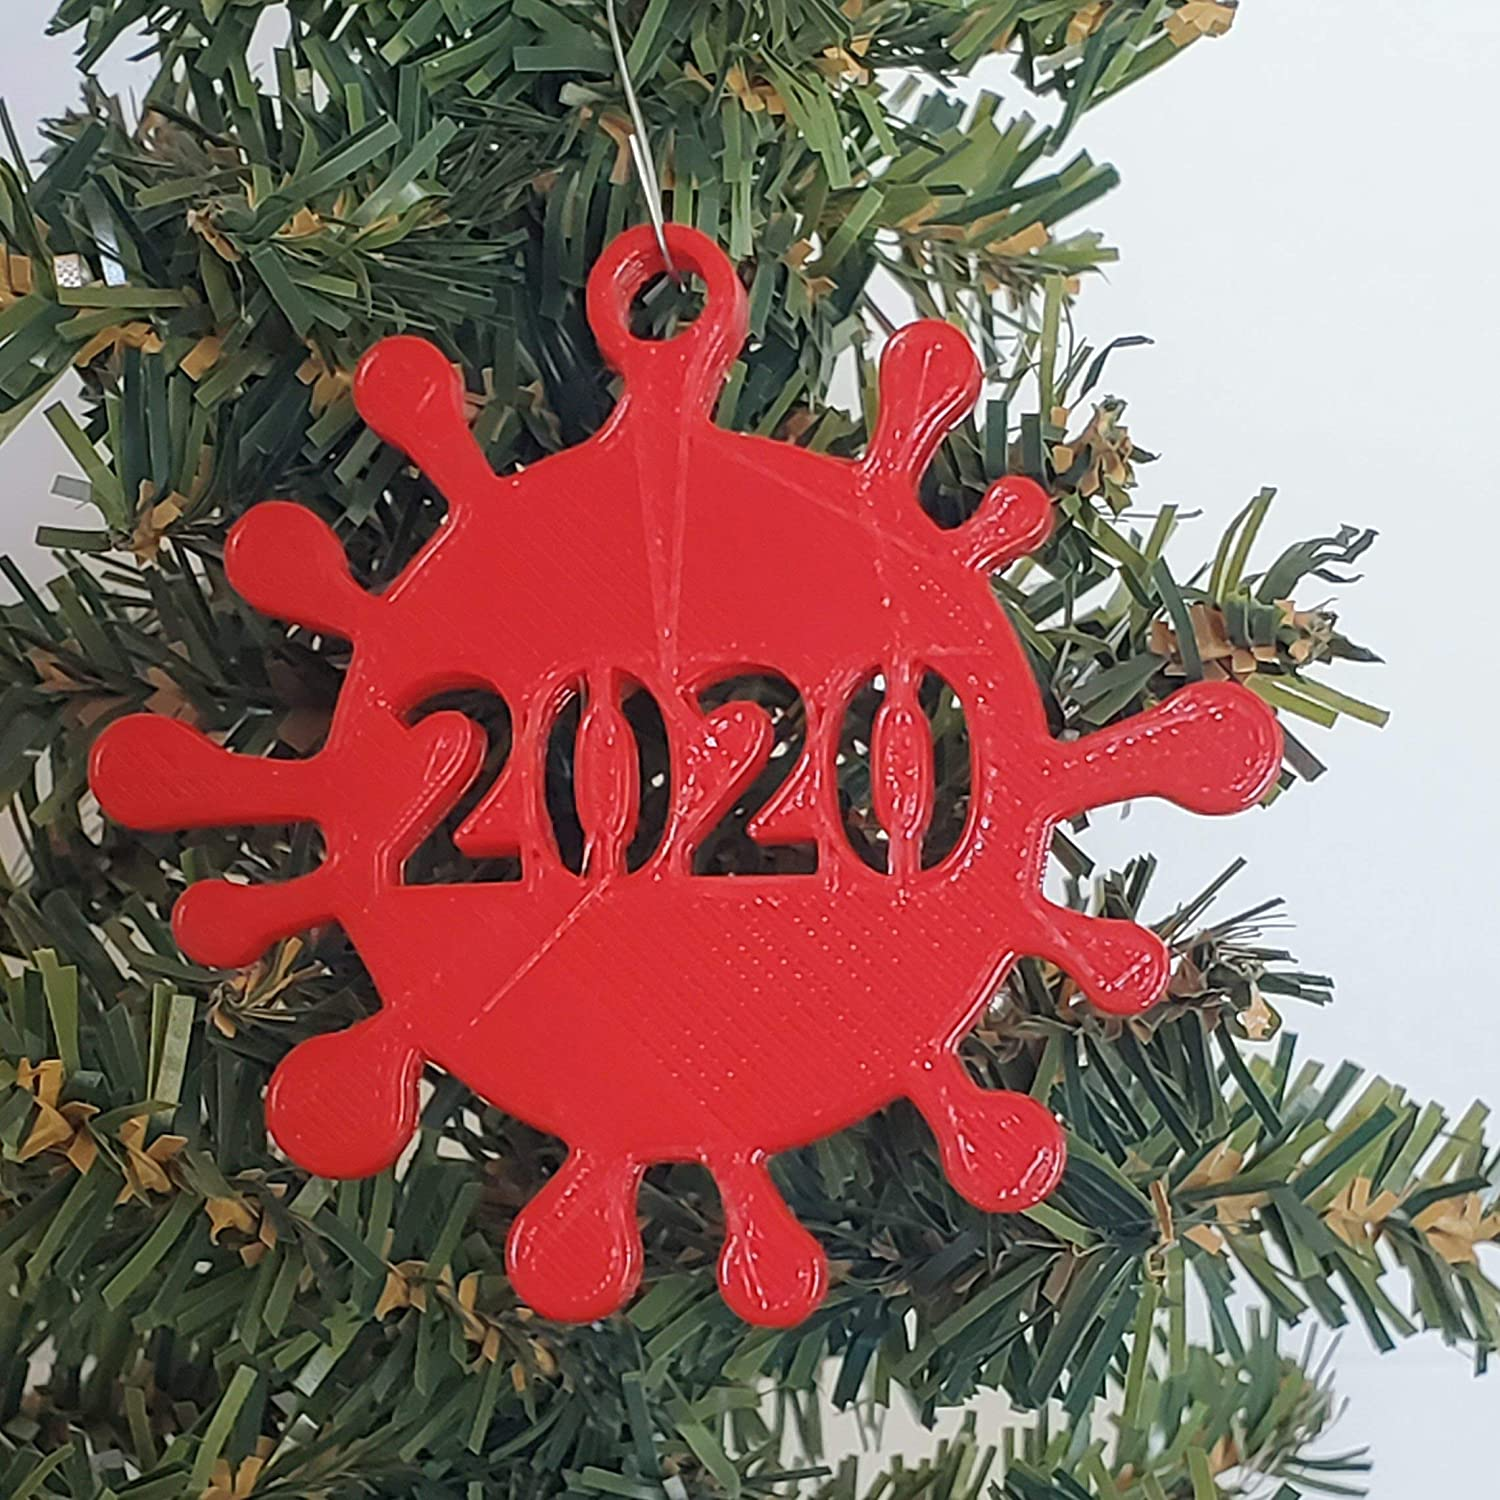 Christmas Ornaments 2020 Series Amazon.com: OR3 2020 COVID Christmas Ornament Keepsake Reminder